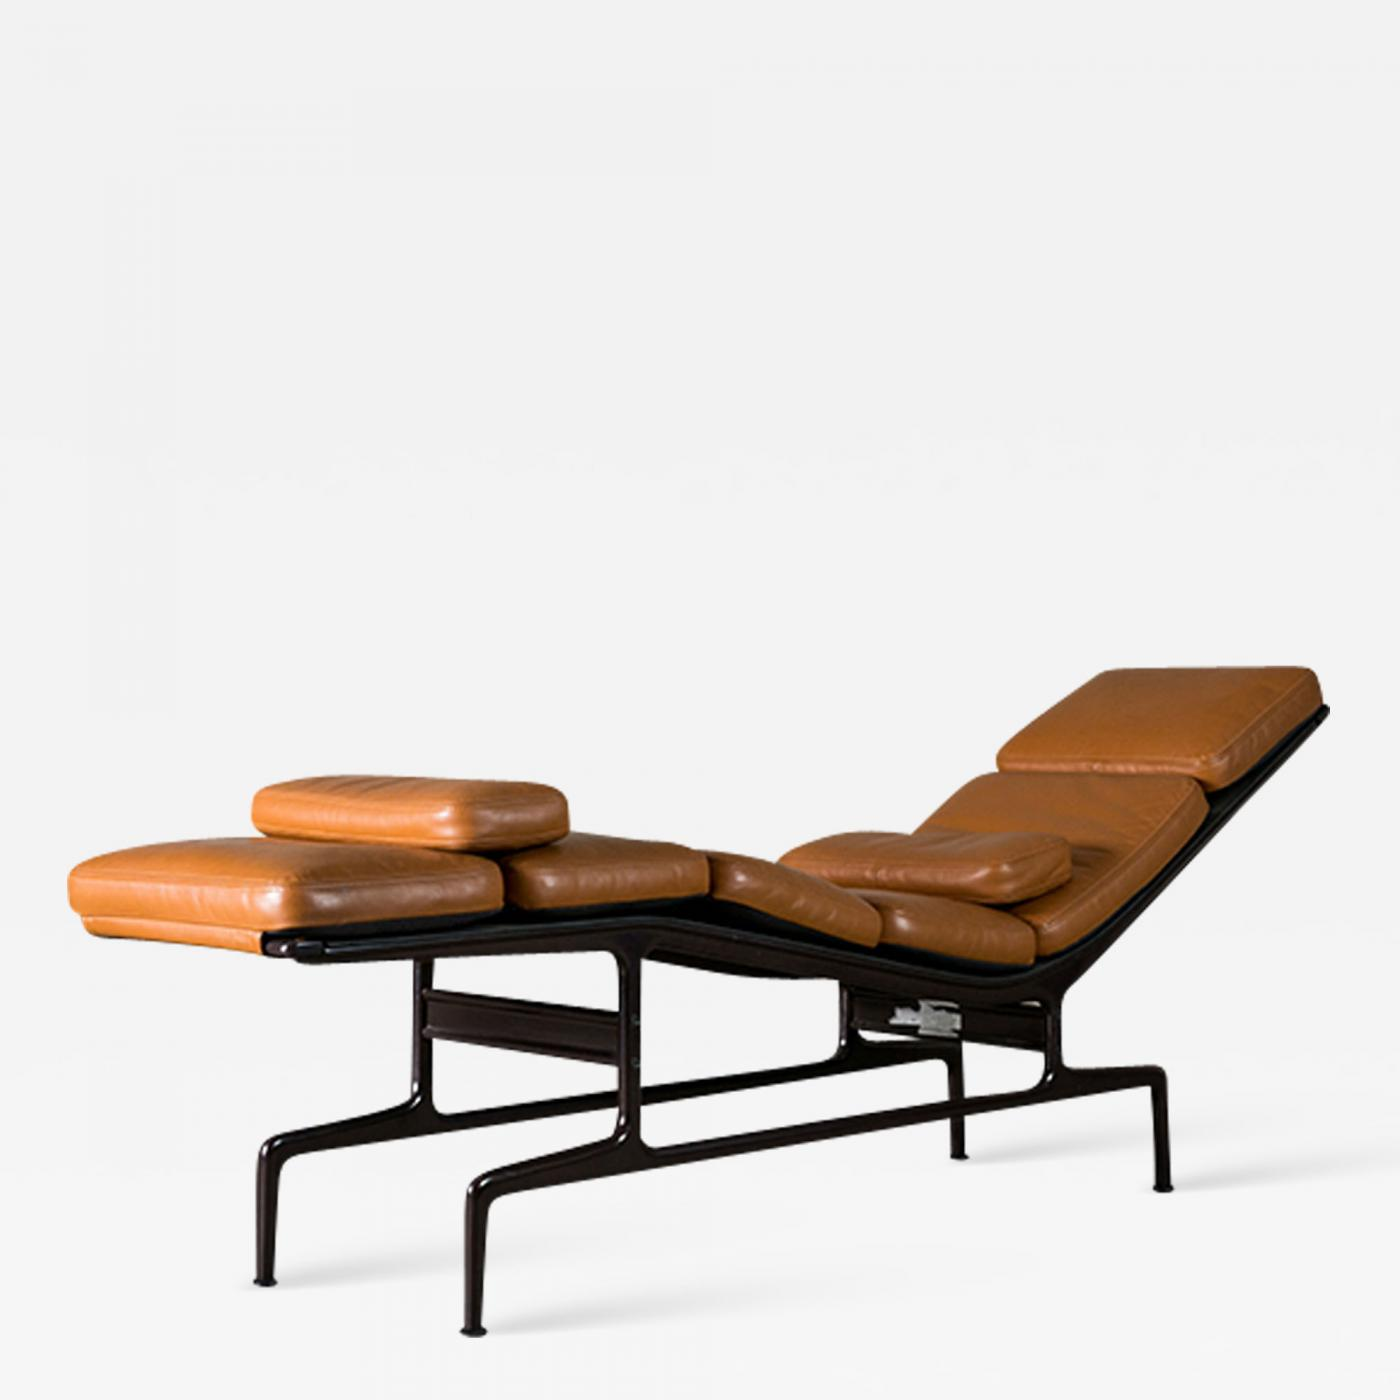 Listings Furniture Seating Lounge Chairs Charles Ray Eames Chaise Longue